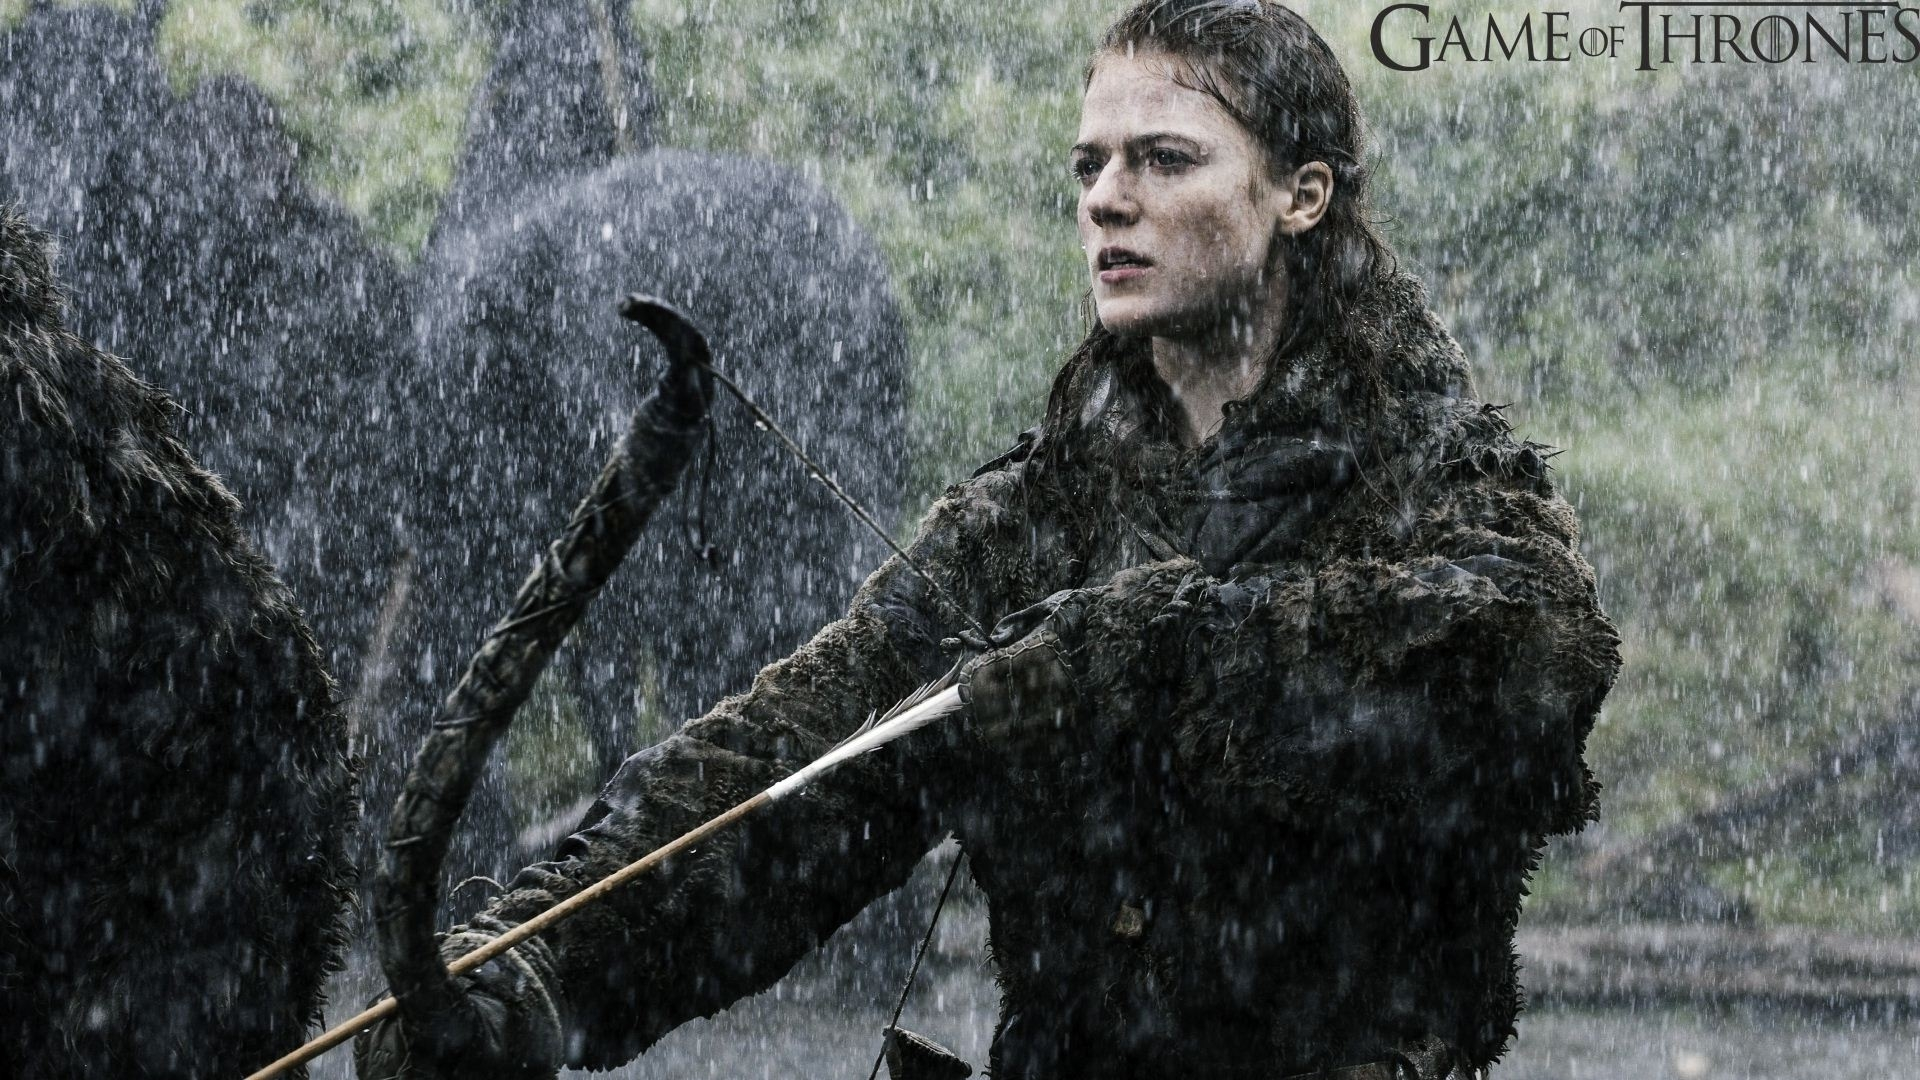 Ygritte   Game of Thrones Wallpaper 1920x1080 78444 1920x1080